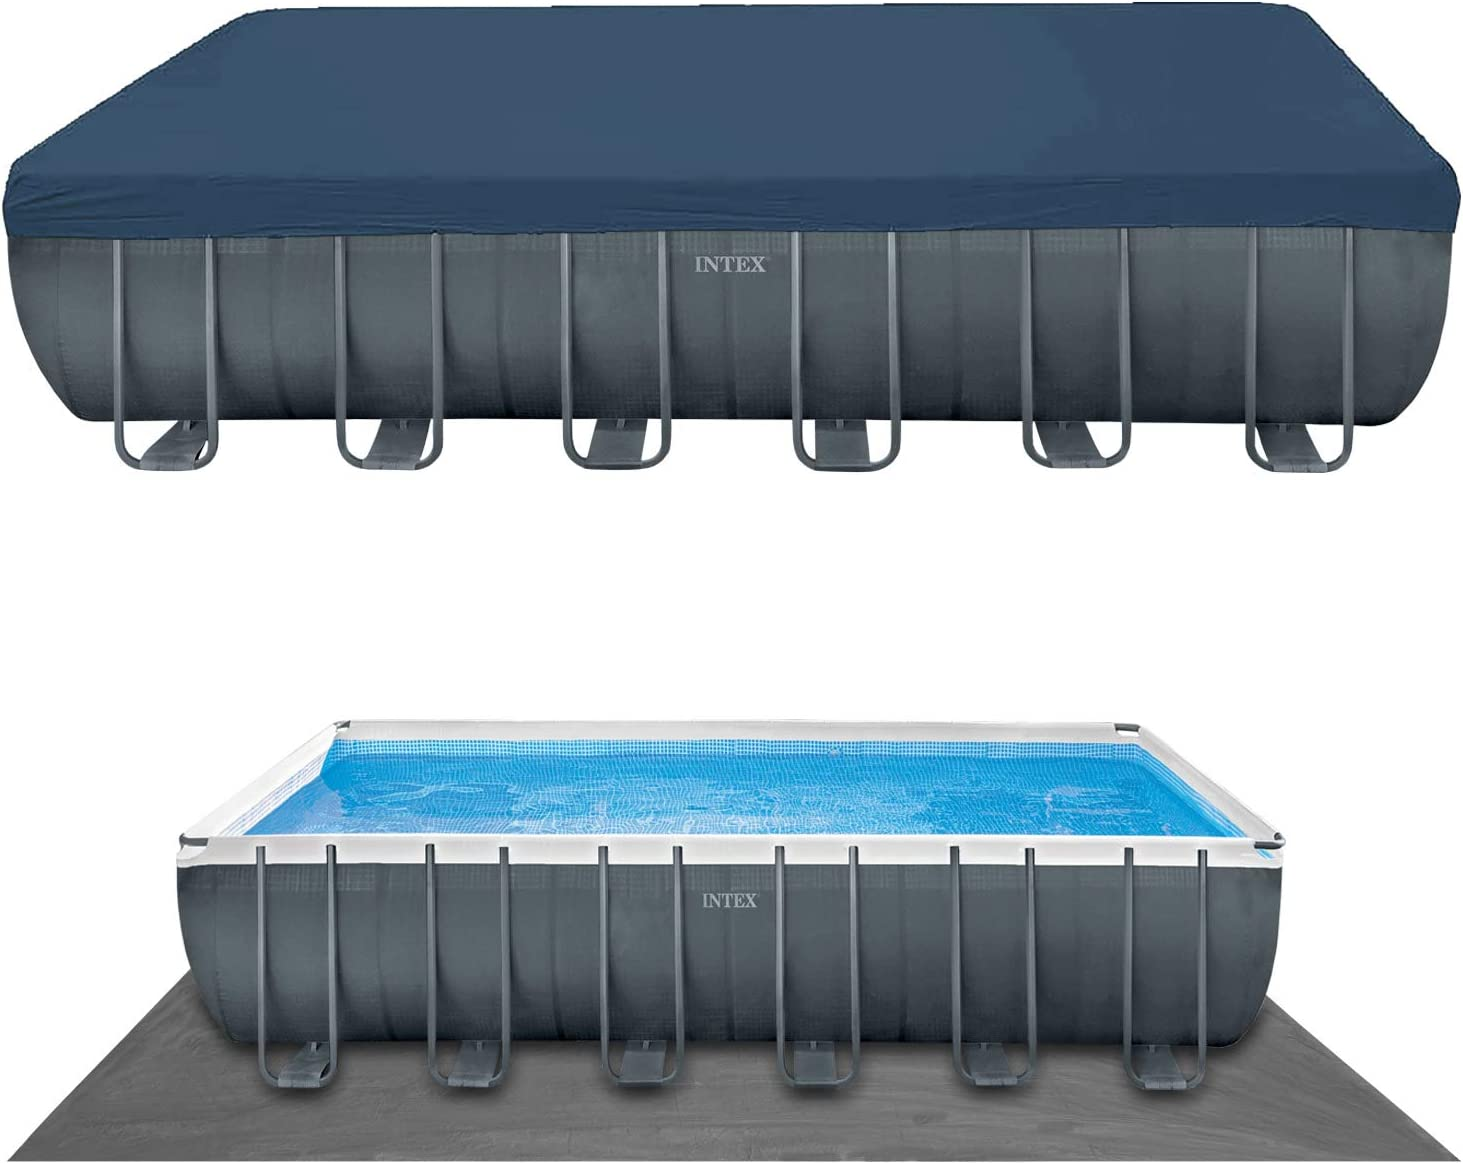 Intex 24Ft X 12Ft X 52In Ultra XTR Rectangular Pool Set: Amazon.es ...